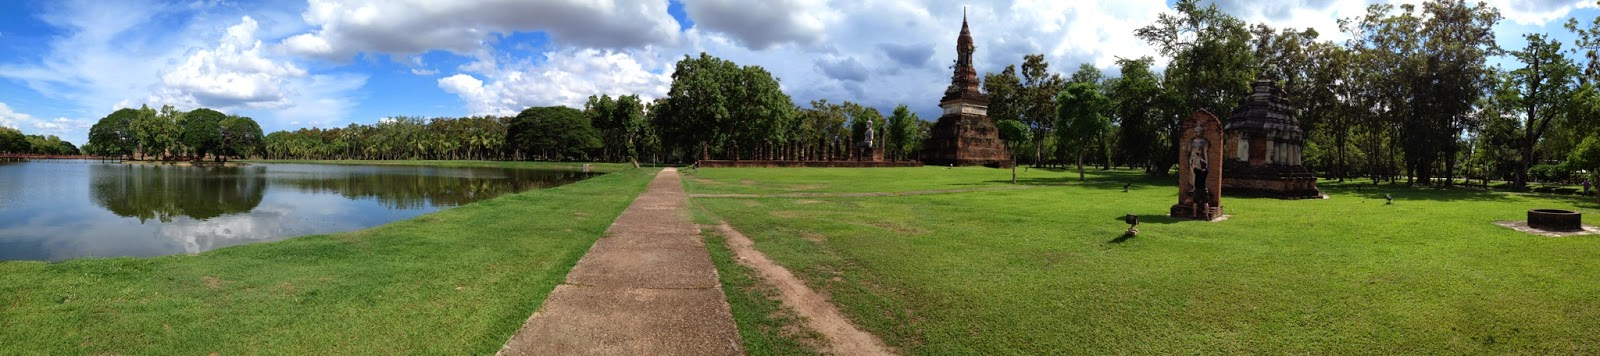 Old Sukhothai - View from Wat Tra Kuan